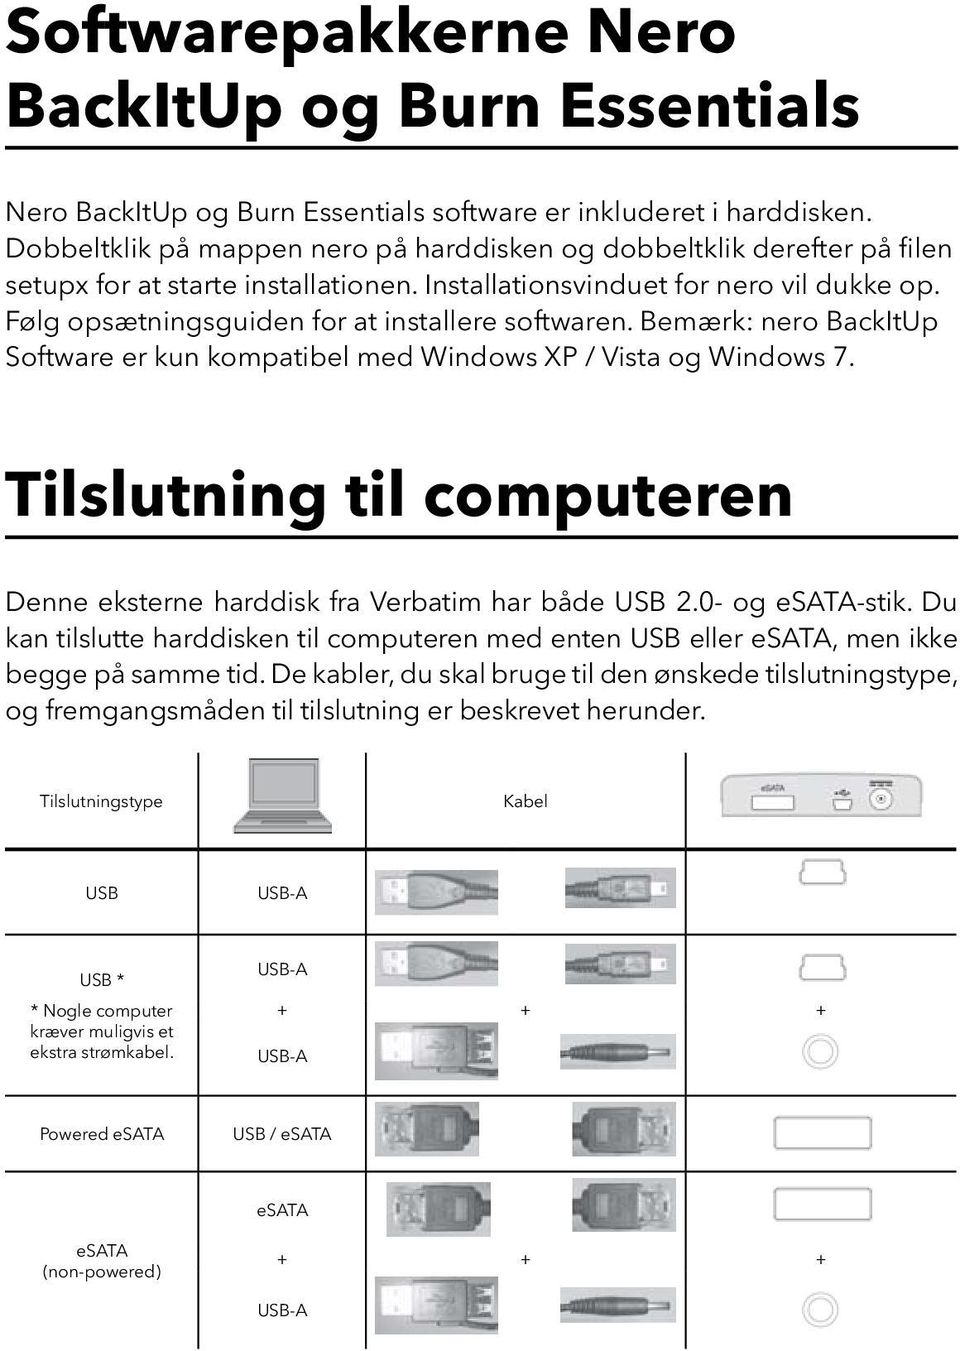 Følg opsætningsguiden for at installere softwaren. Bemærk: nero BackItUp Software er kun kompatibel med Windows XP / Vista og Windows 7.